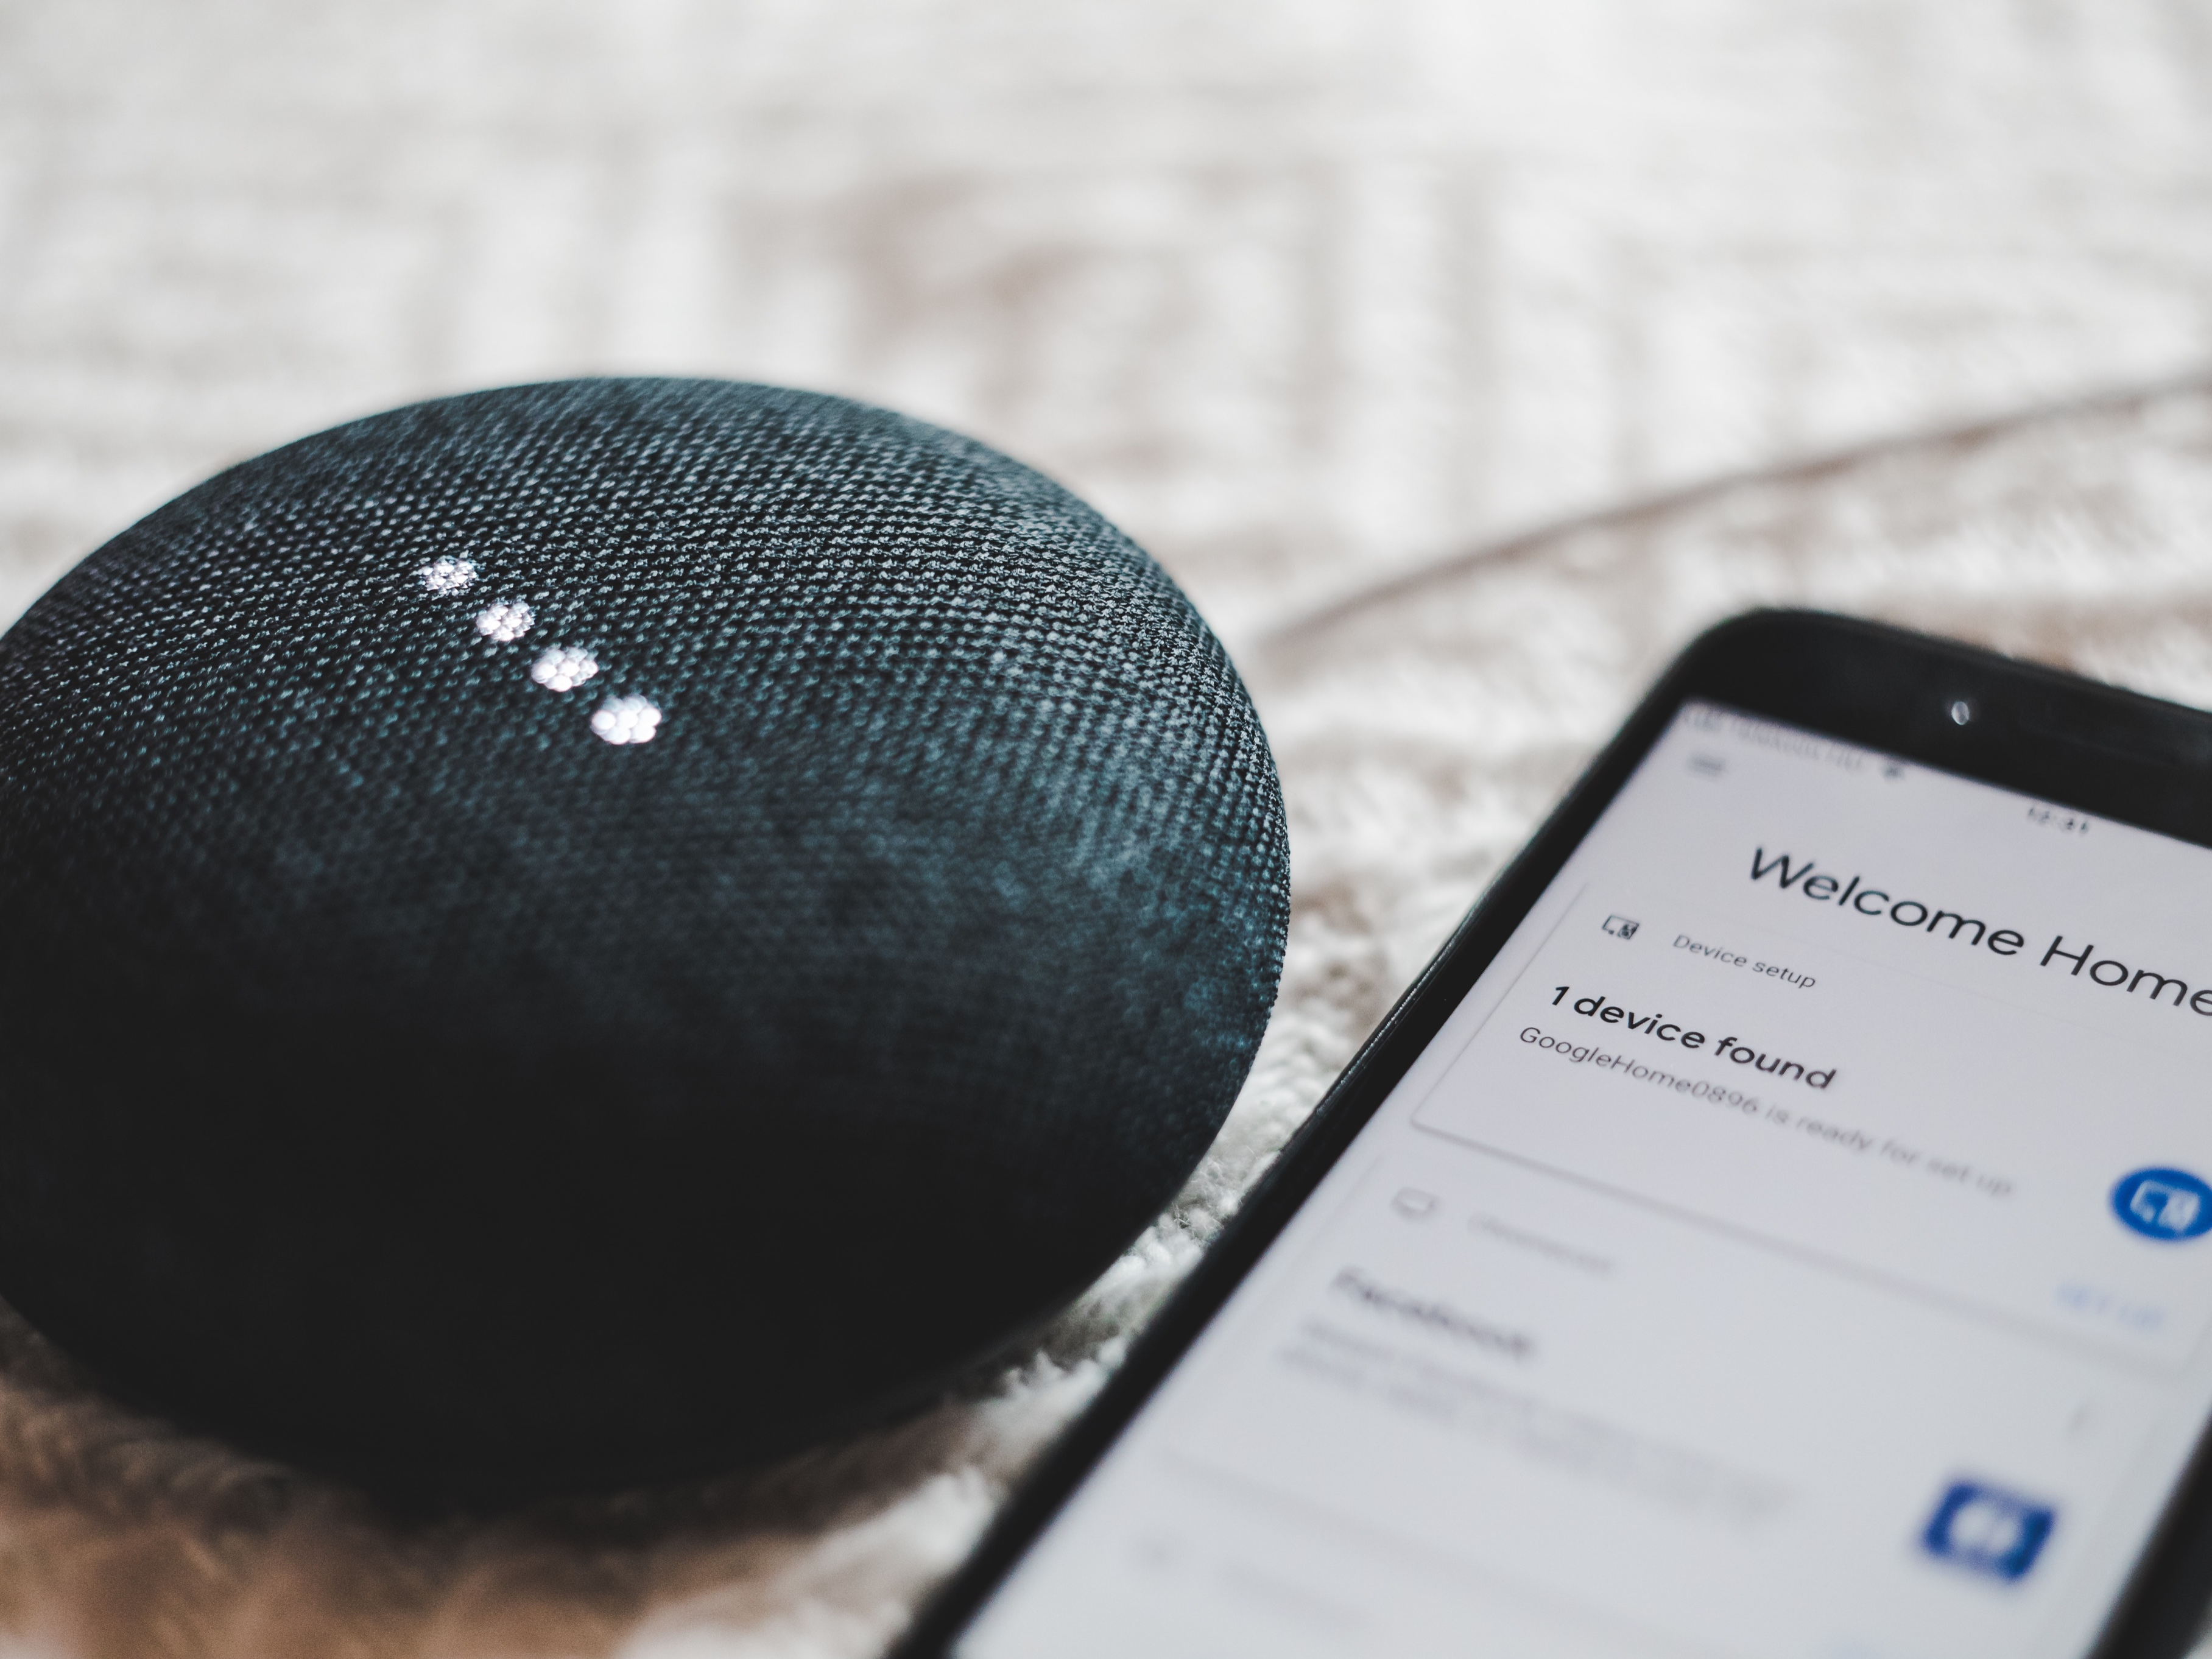 A smart device that can be connected to phones. Image credit: BENCE BOROS/Unsplash